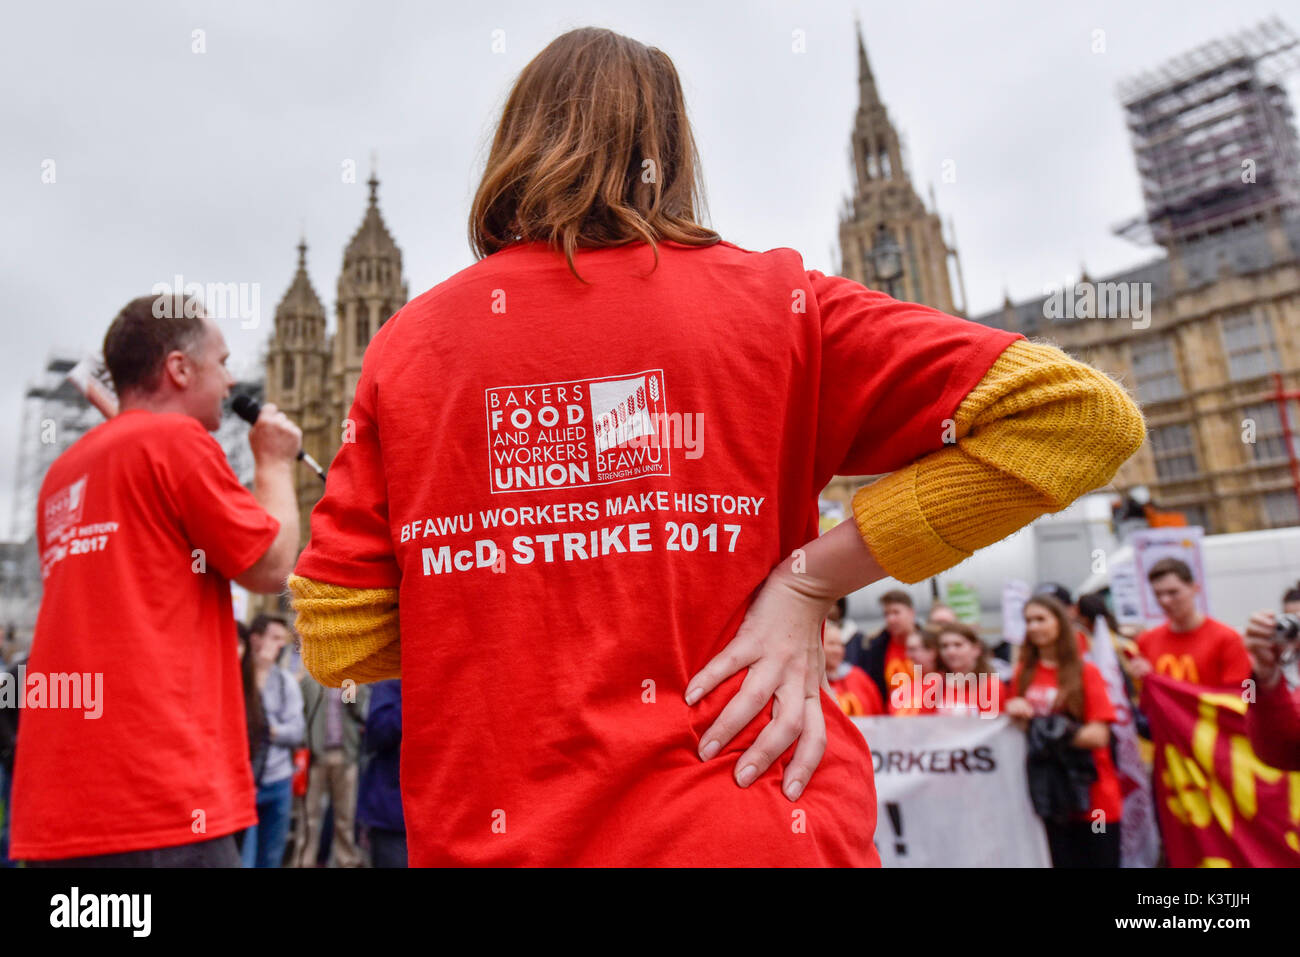 London, UK.  4 September 2017.  McDonald's staff and members of the Bakers Food and Allied Workers Union (BFAWU) attend a rally outside the Houses of Parliament in solidarity with McDonald's staff in Cambridge and Crayford who have gone on strike demanding an end to zero hours contracts and a minimum wage of GBP10 per hour.  Credit: Stephen Chung / Alamy Live News - Stock Image